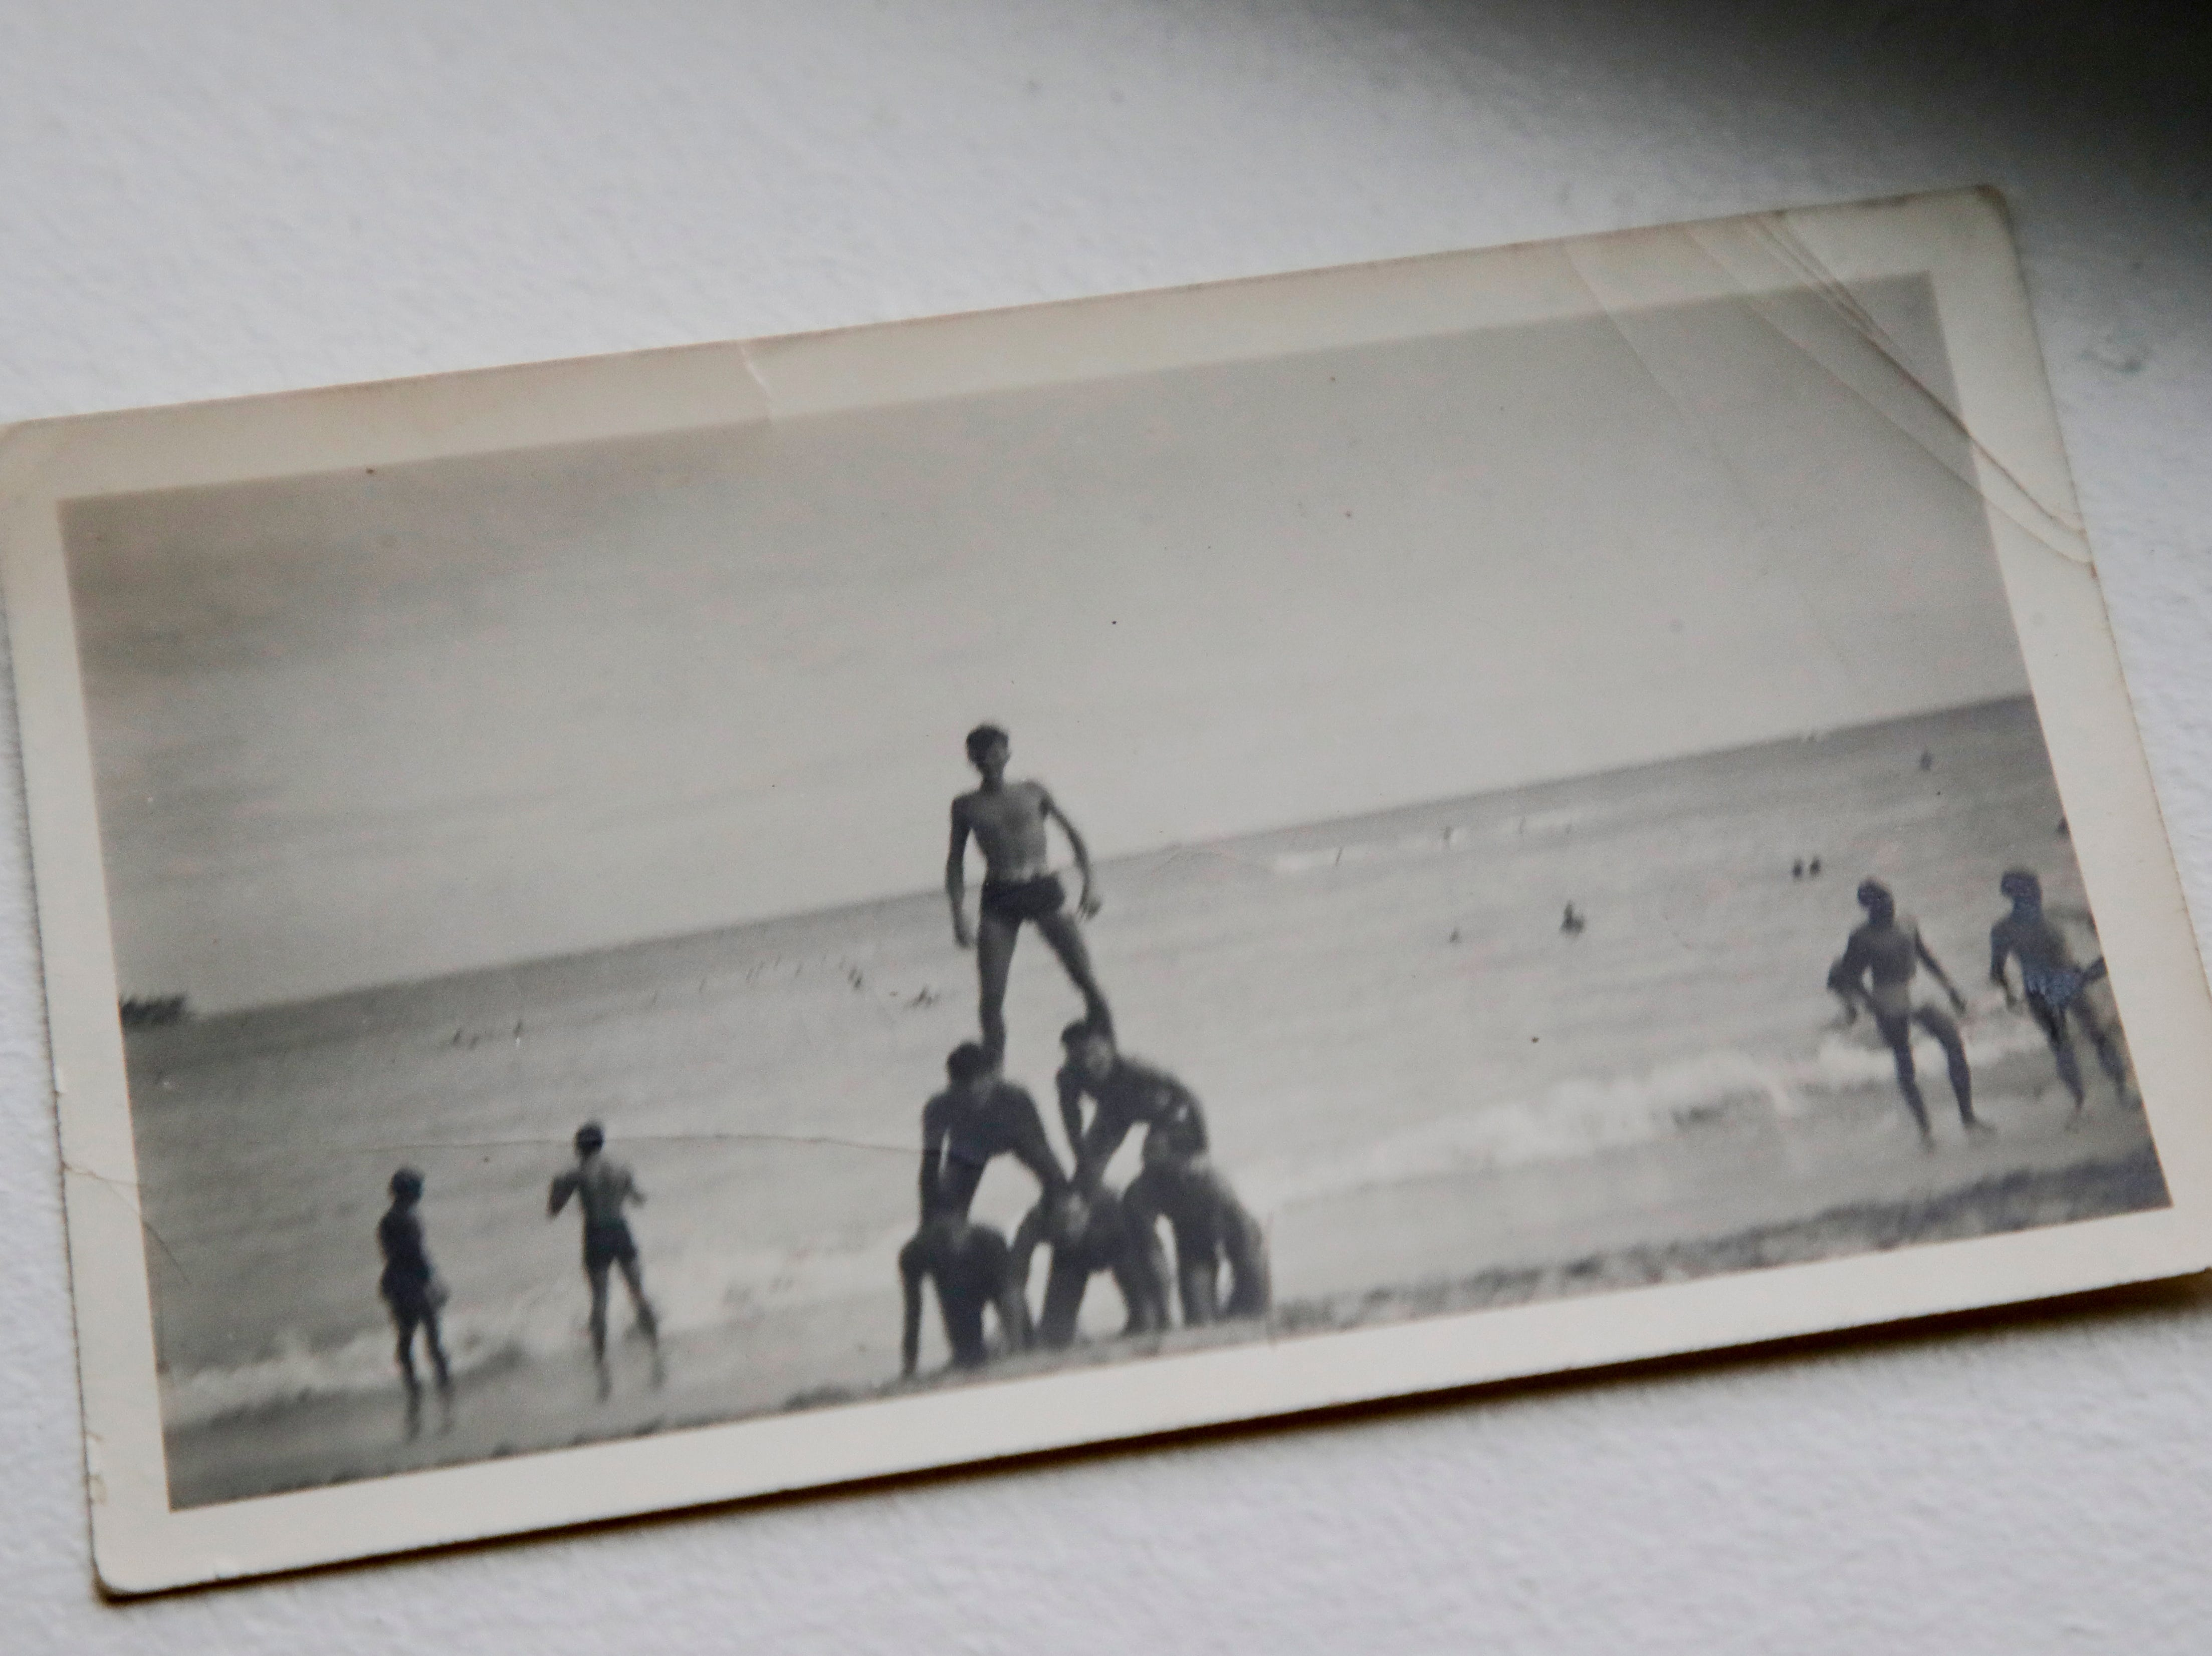 A photo shows Earl Baum on the top of a human pyramid at the beach before his death at Pearl Harbor Dec. 7, 1941.